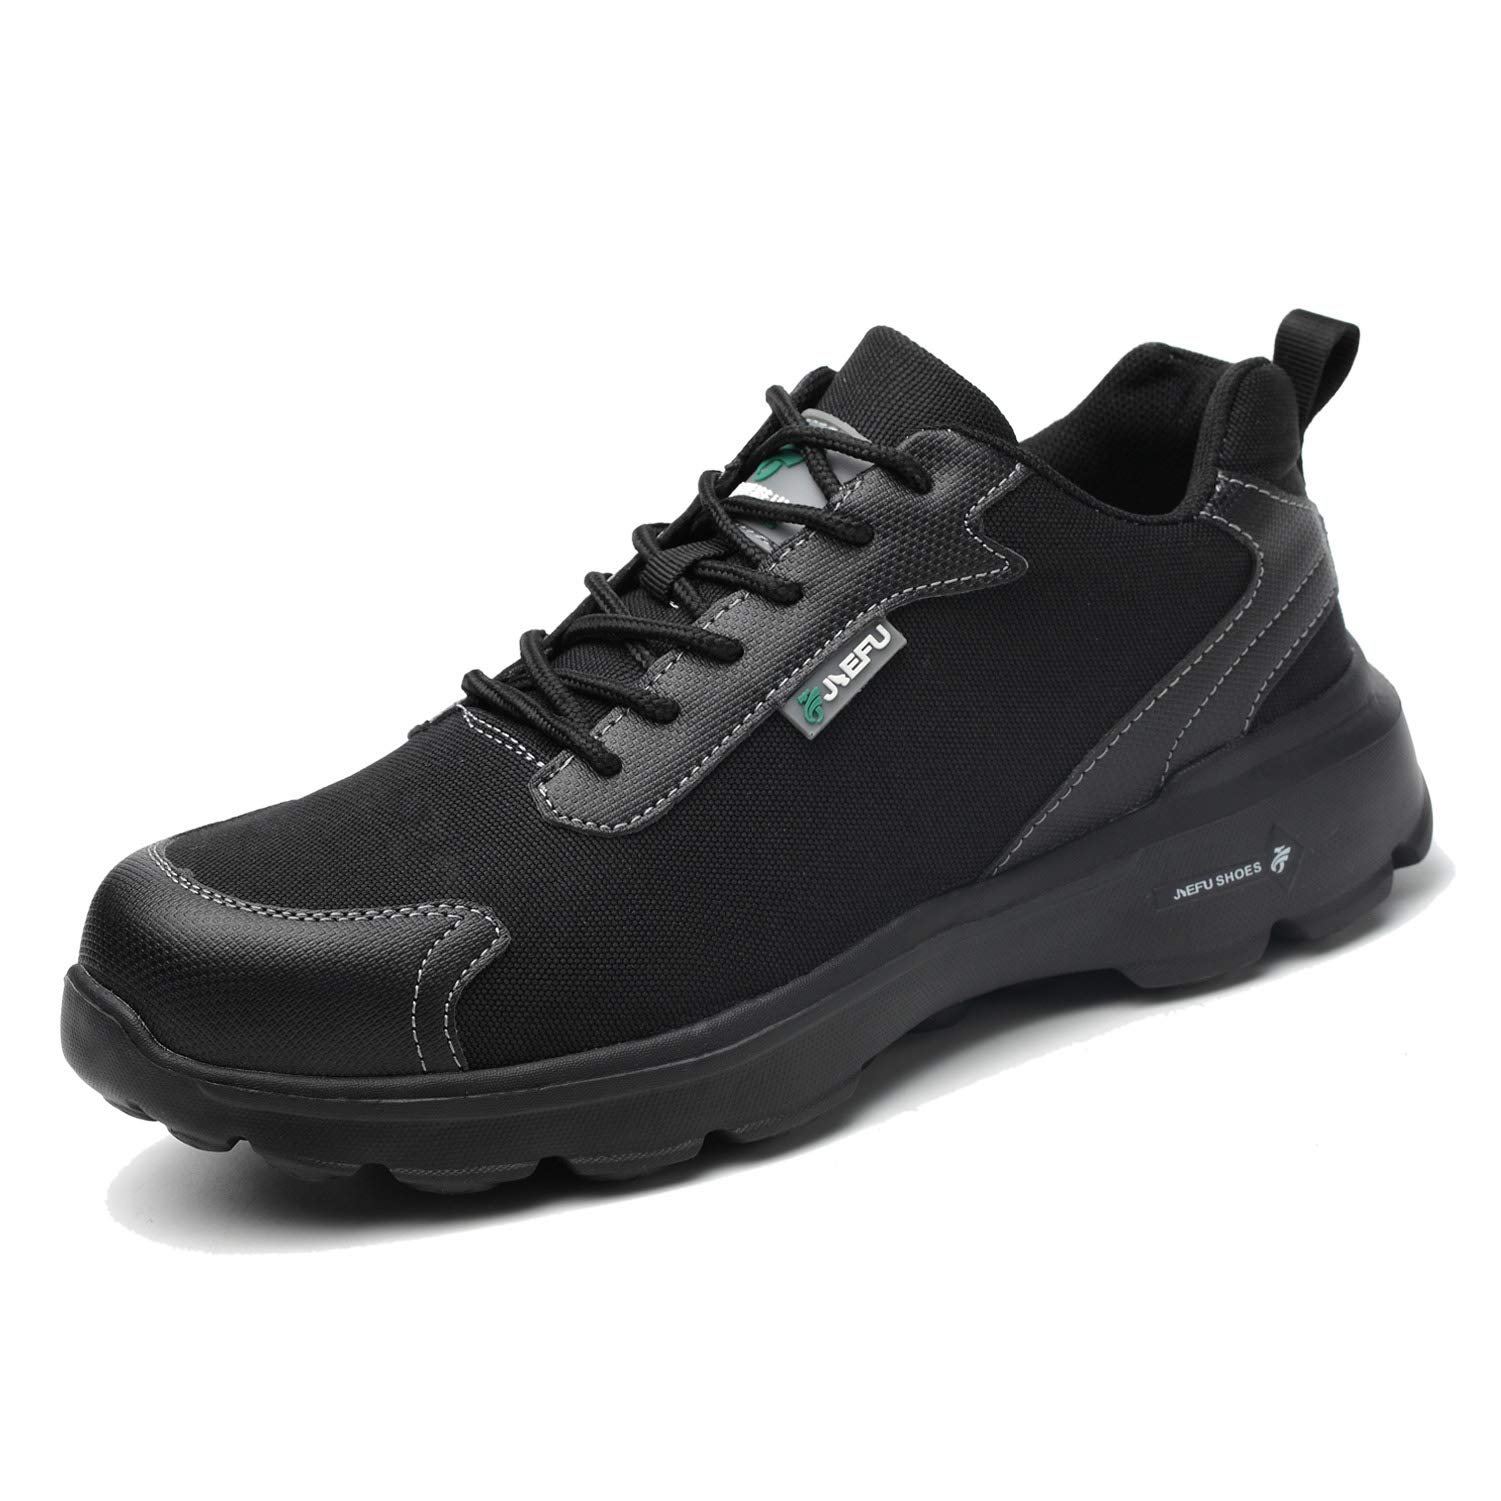 Steel Toe Shoes Men, Breathable Lightweight Industrial & Constructions Work Safety Shoes, Puncture Proof Slip Resistant Sneakers for Women